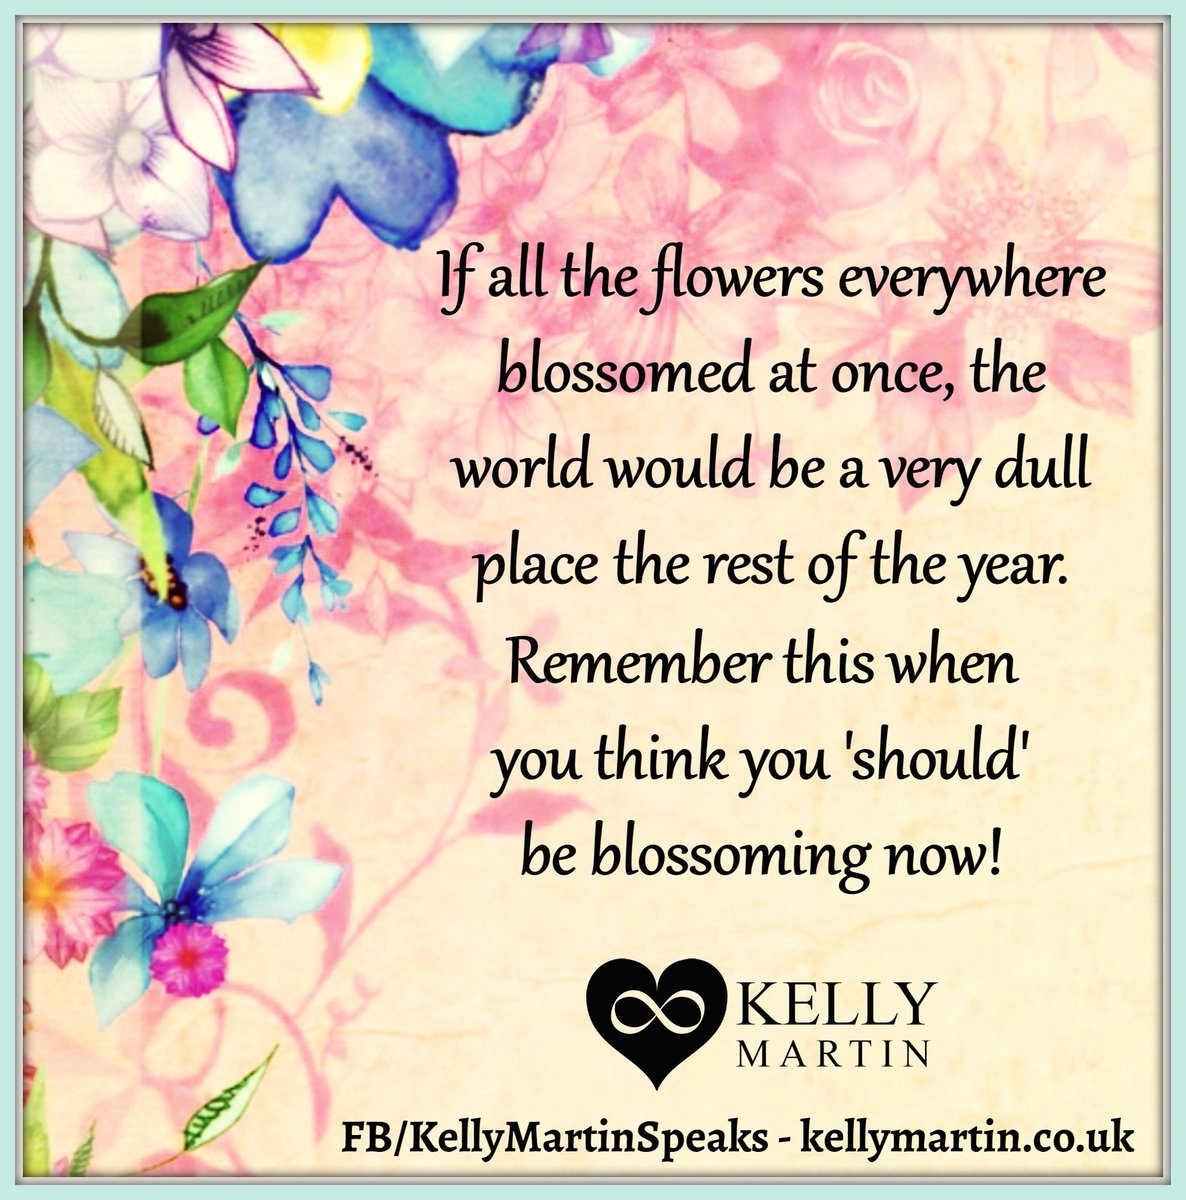 If all the flowers everywhere blossomed at once, the world would be a...